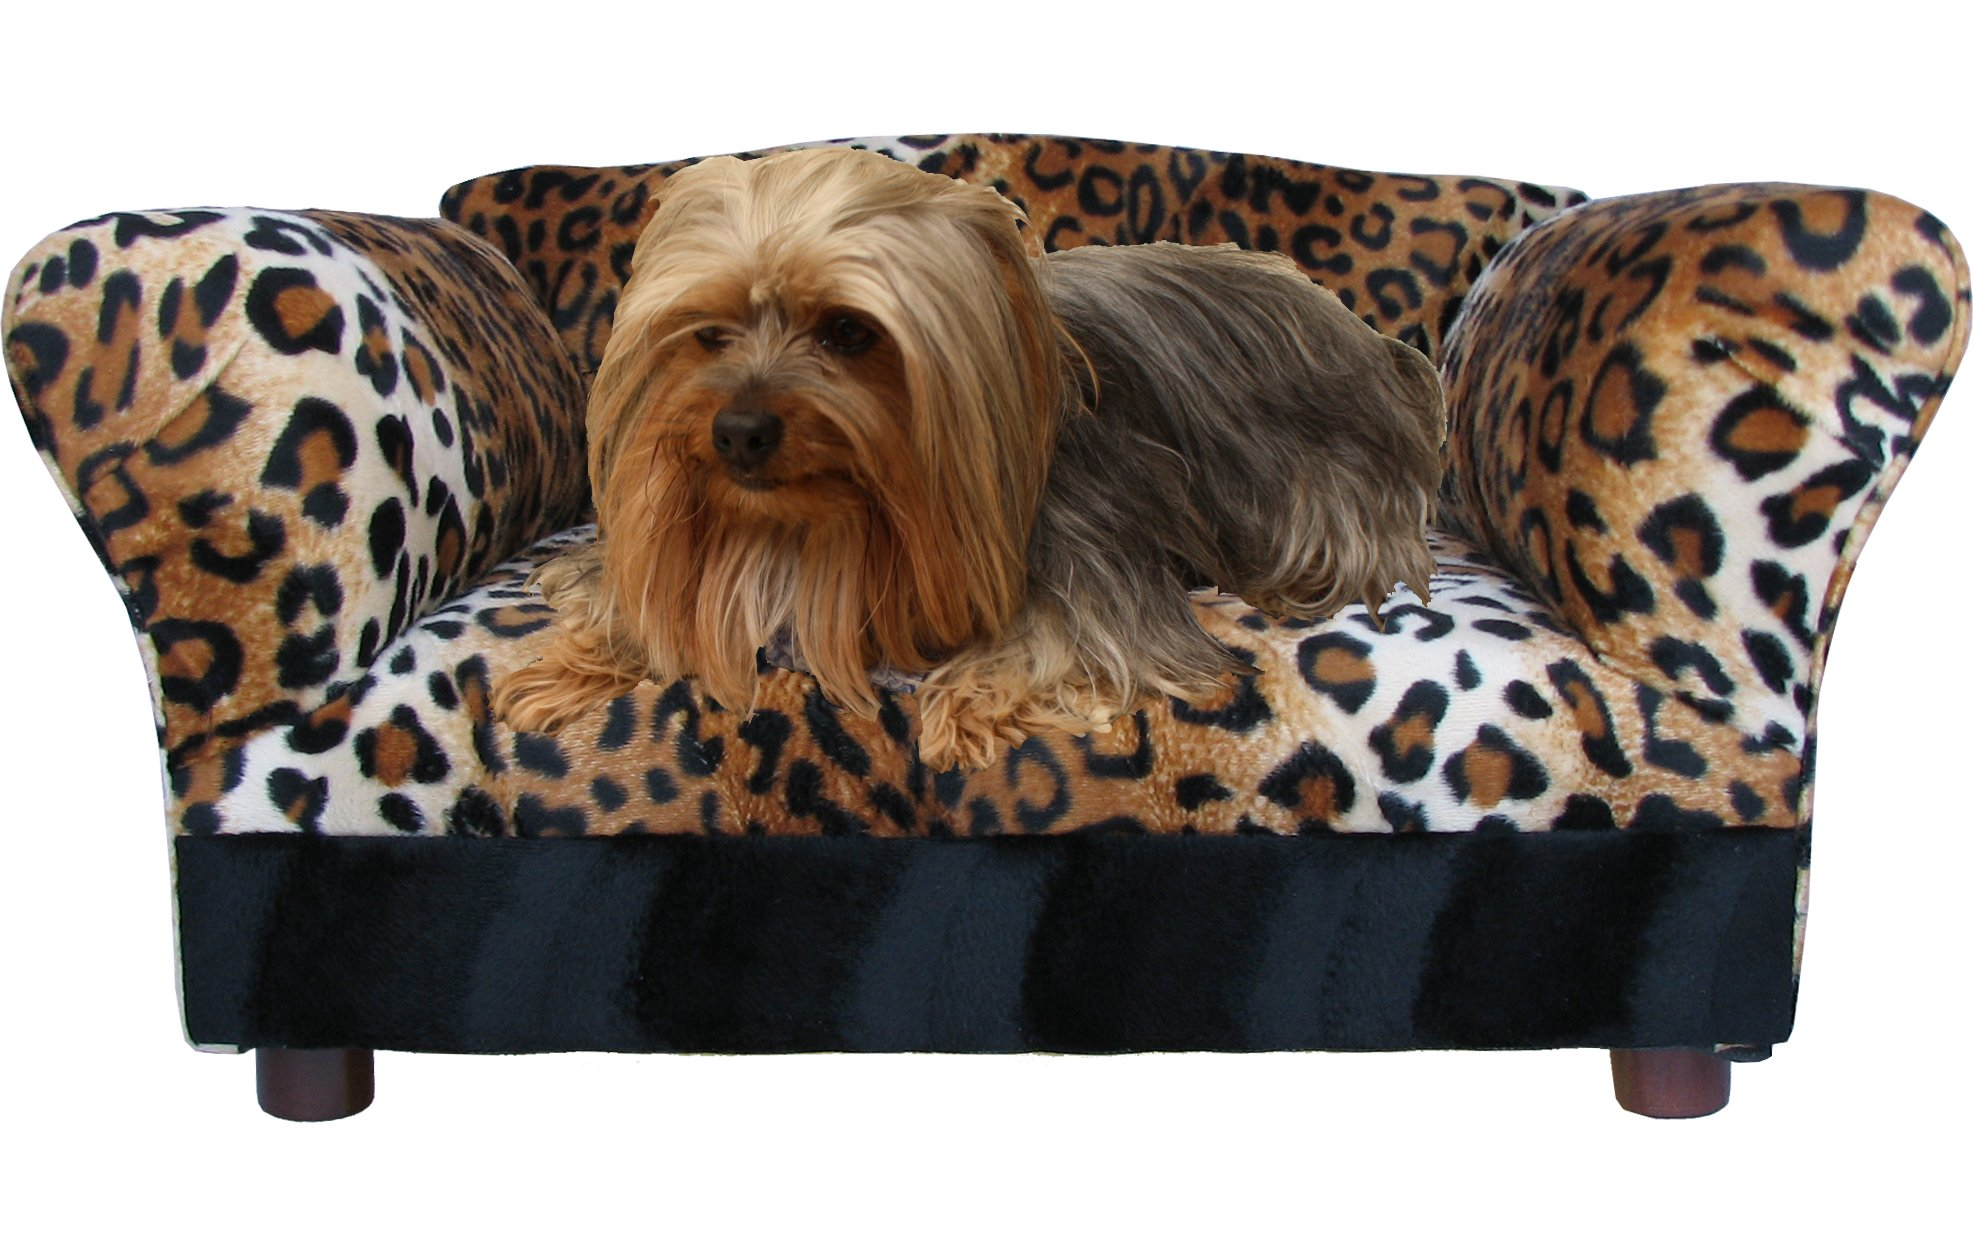 Pet Beds For Dogs And Cats Skarro Be Fun Live Life In Color